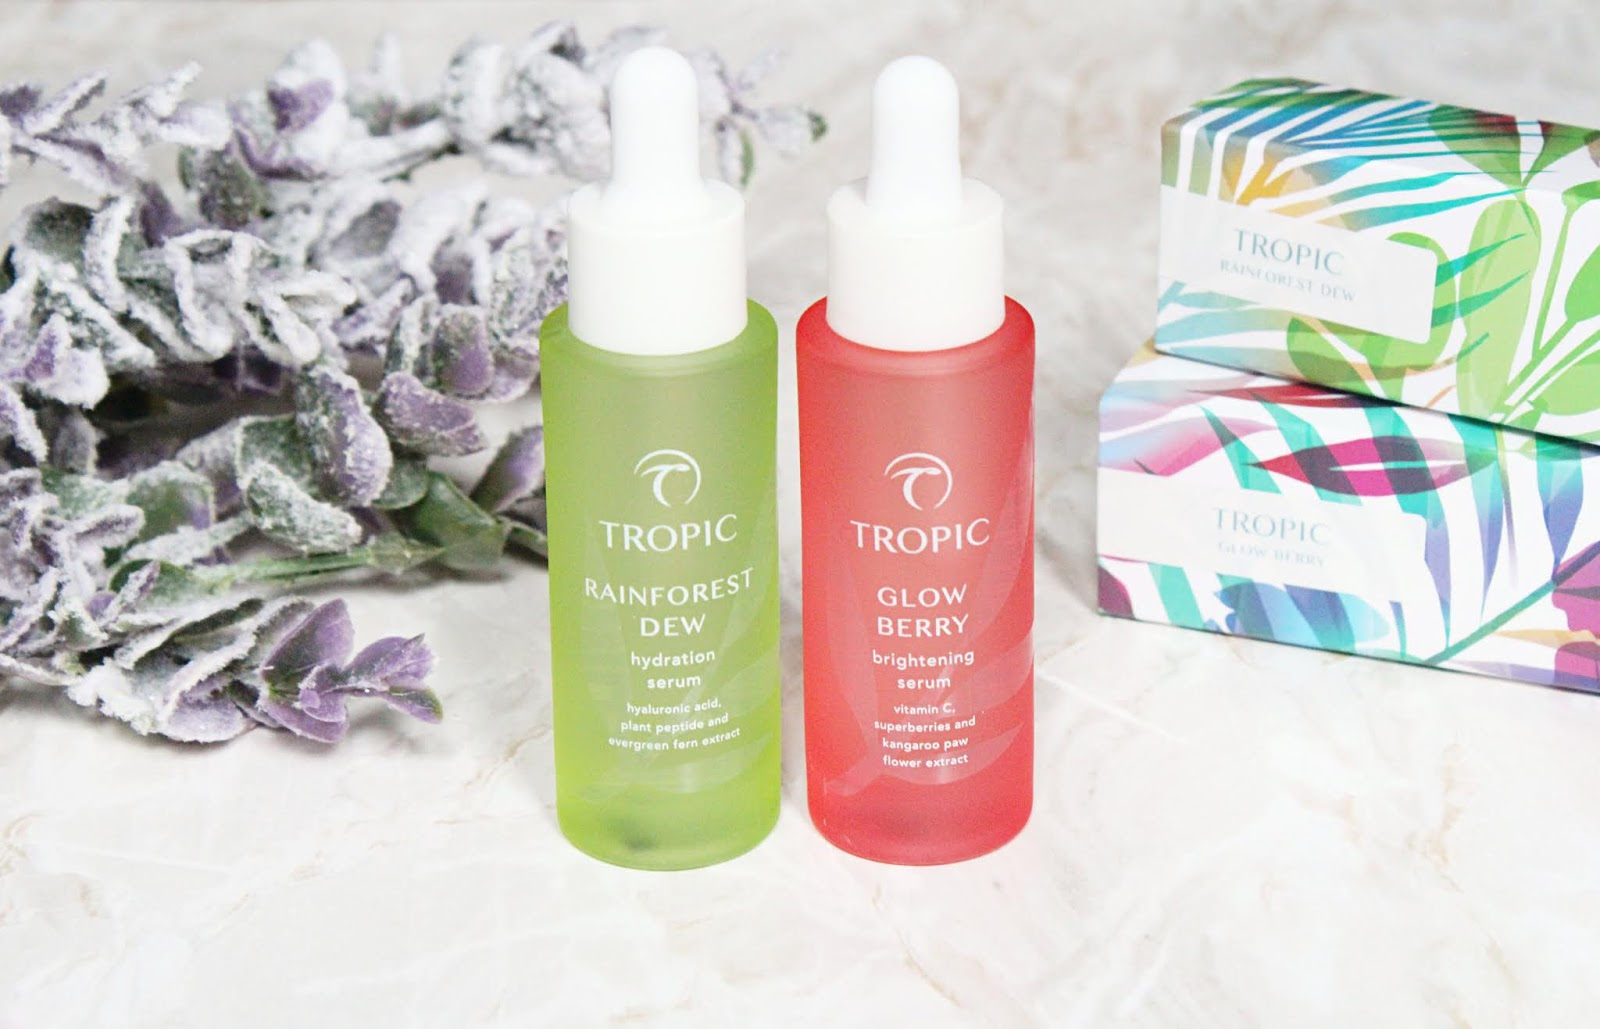 New Serums From Tropic Skincare